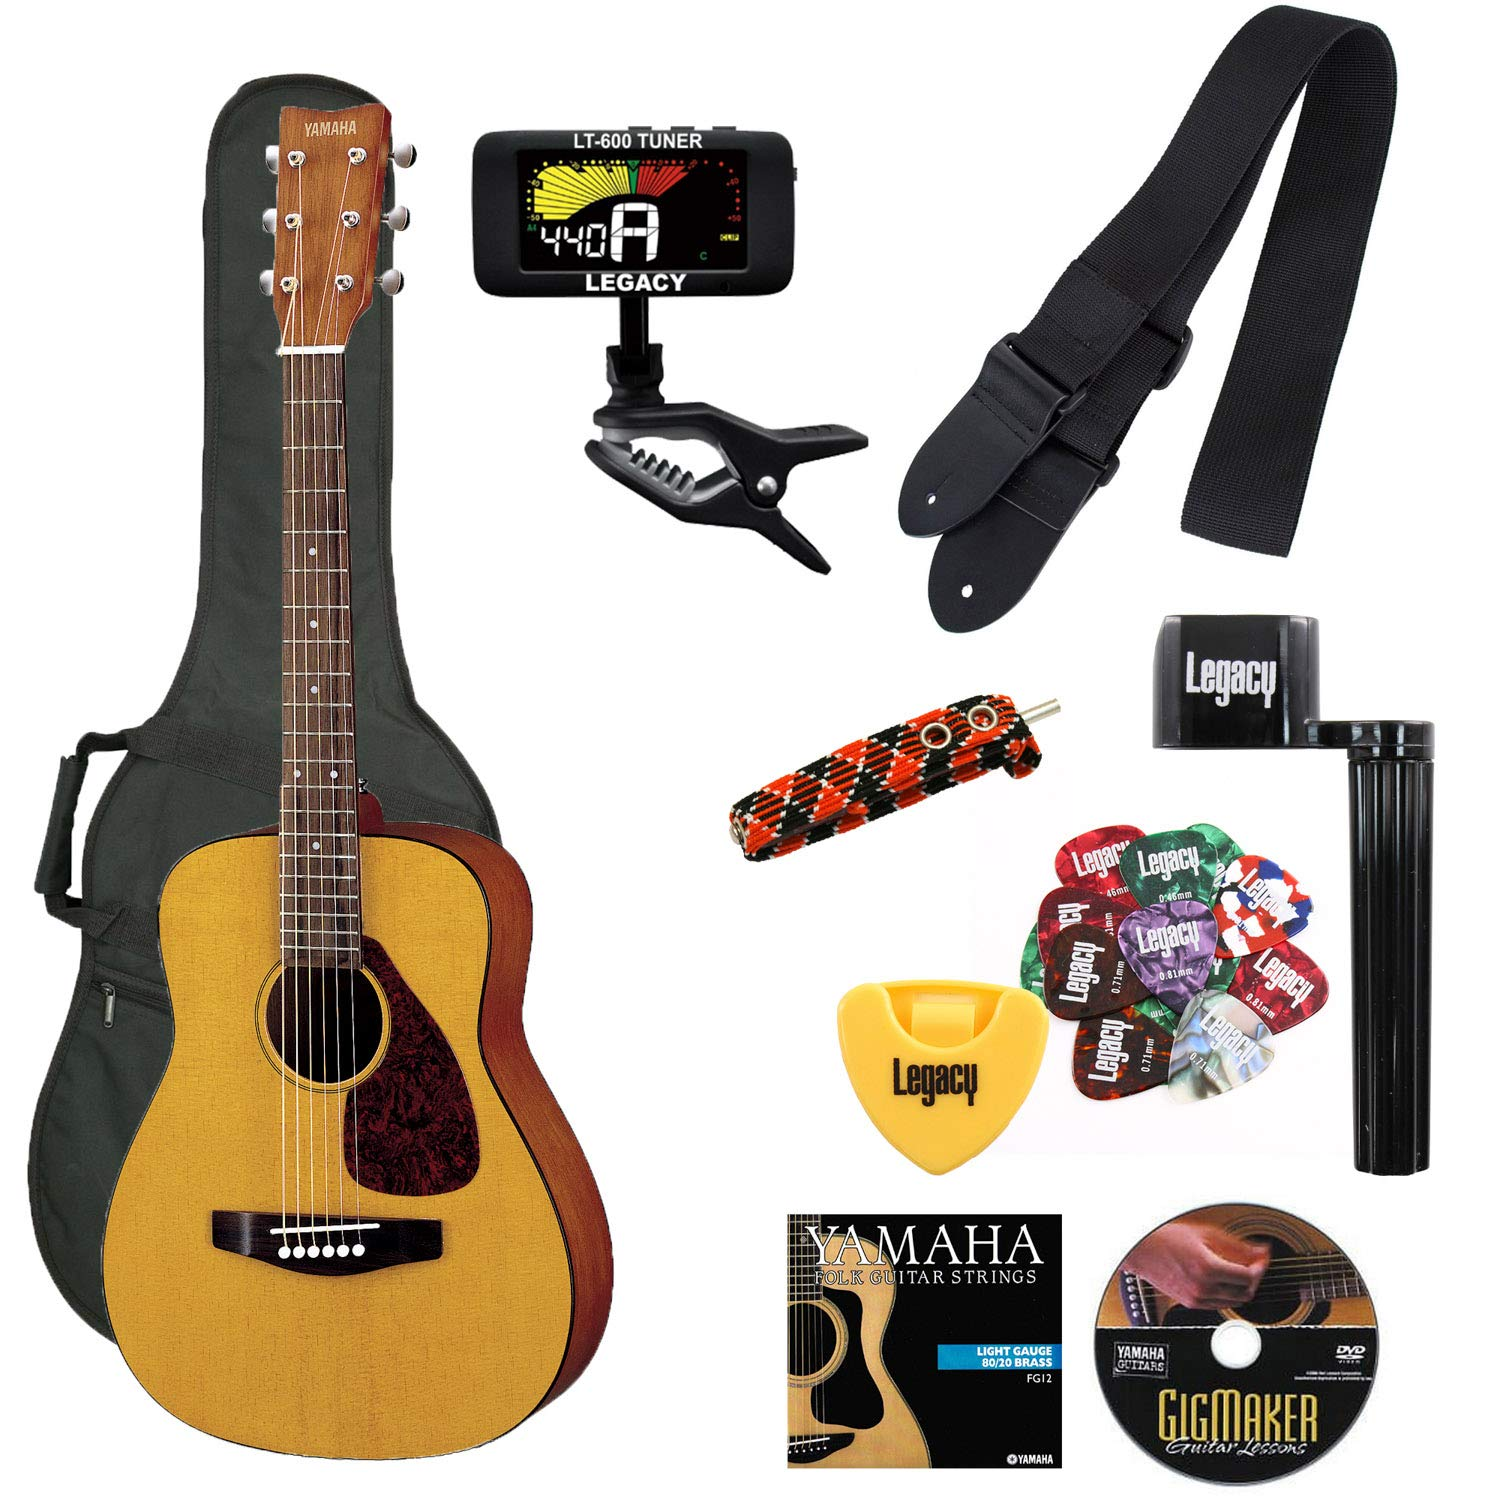 Yamaha JR1 FG Junior 3/4 Size Acoustic Guitar with Gig Bag and Legacy Accessory Bundle by YAMAHA